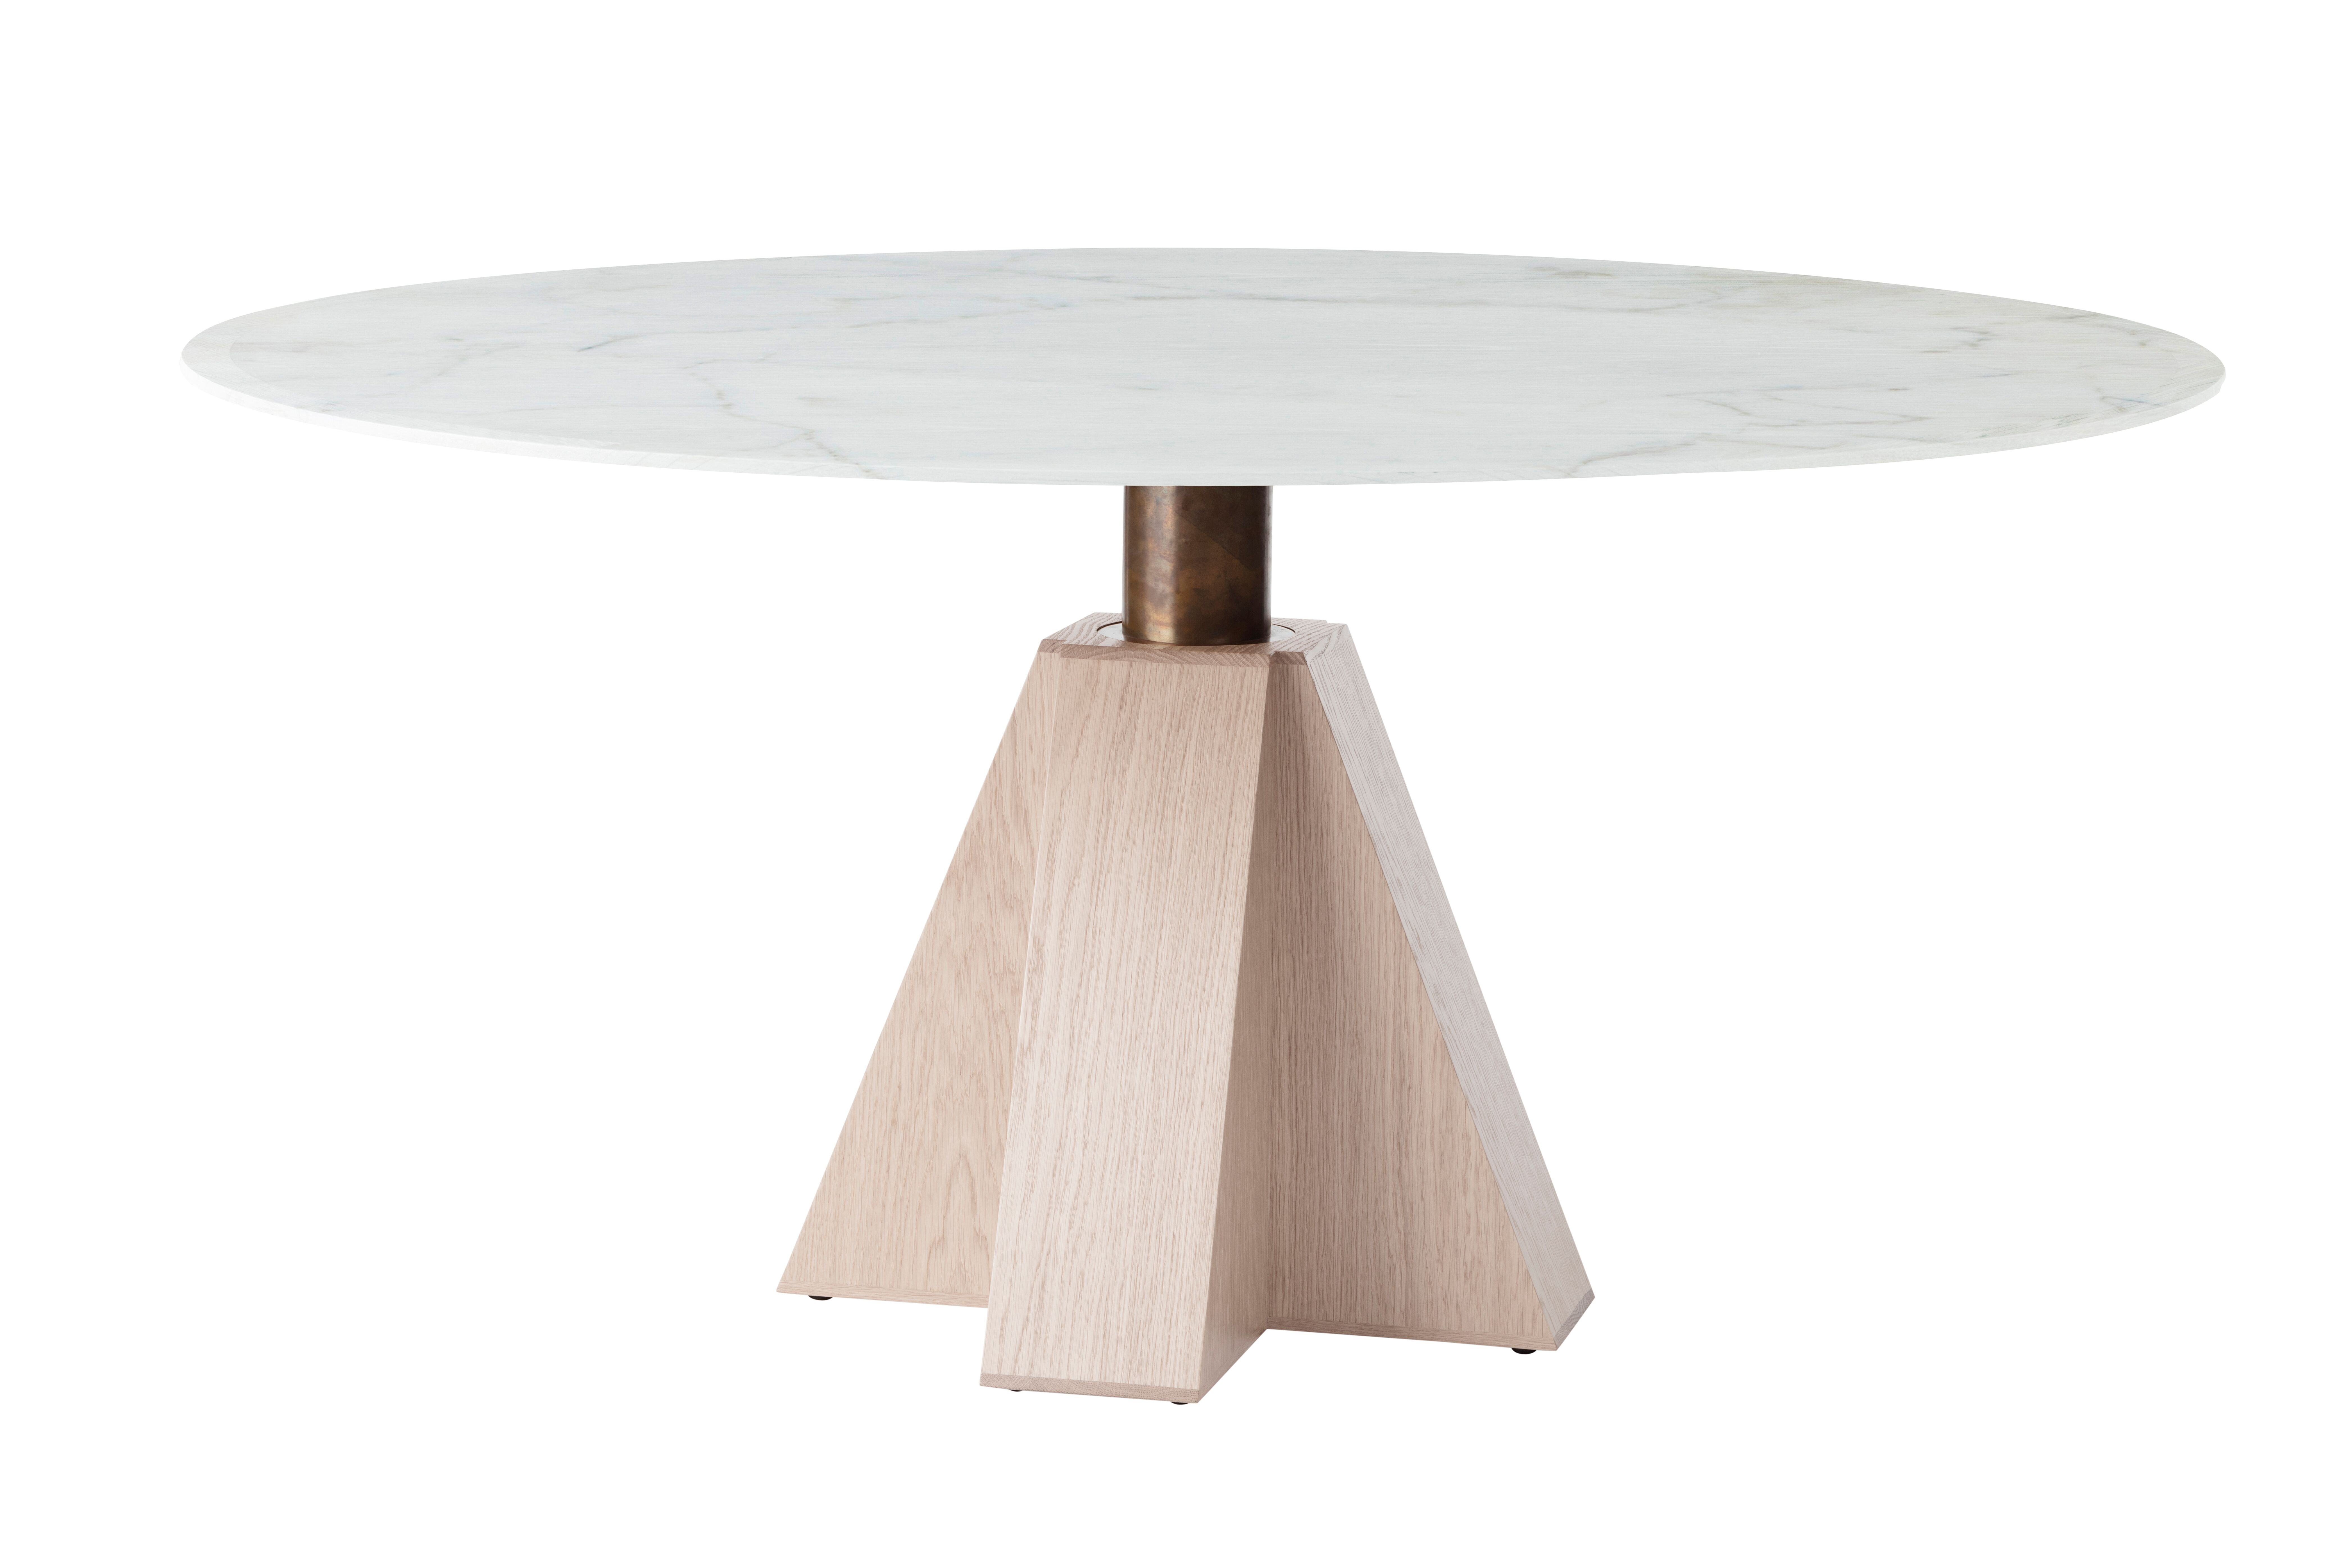 M Timber Dining Table By Daniel Boddam